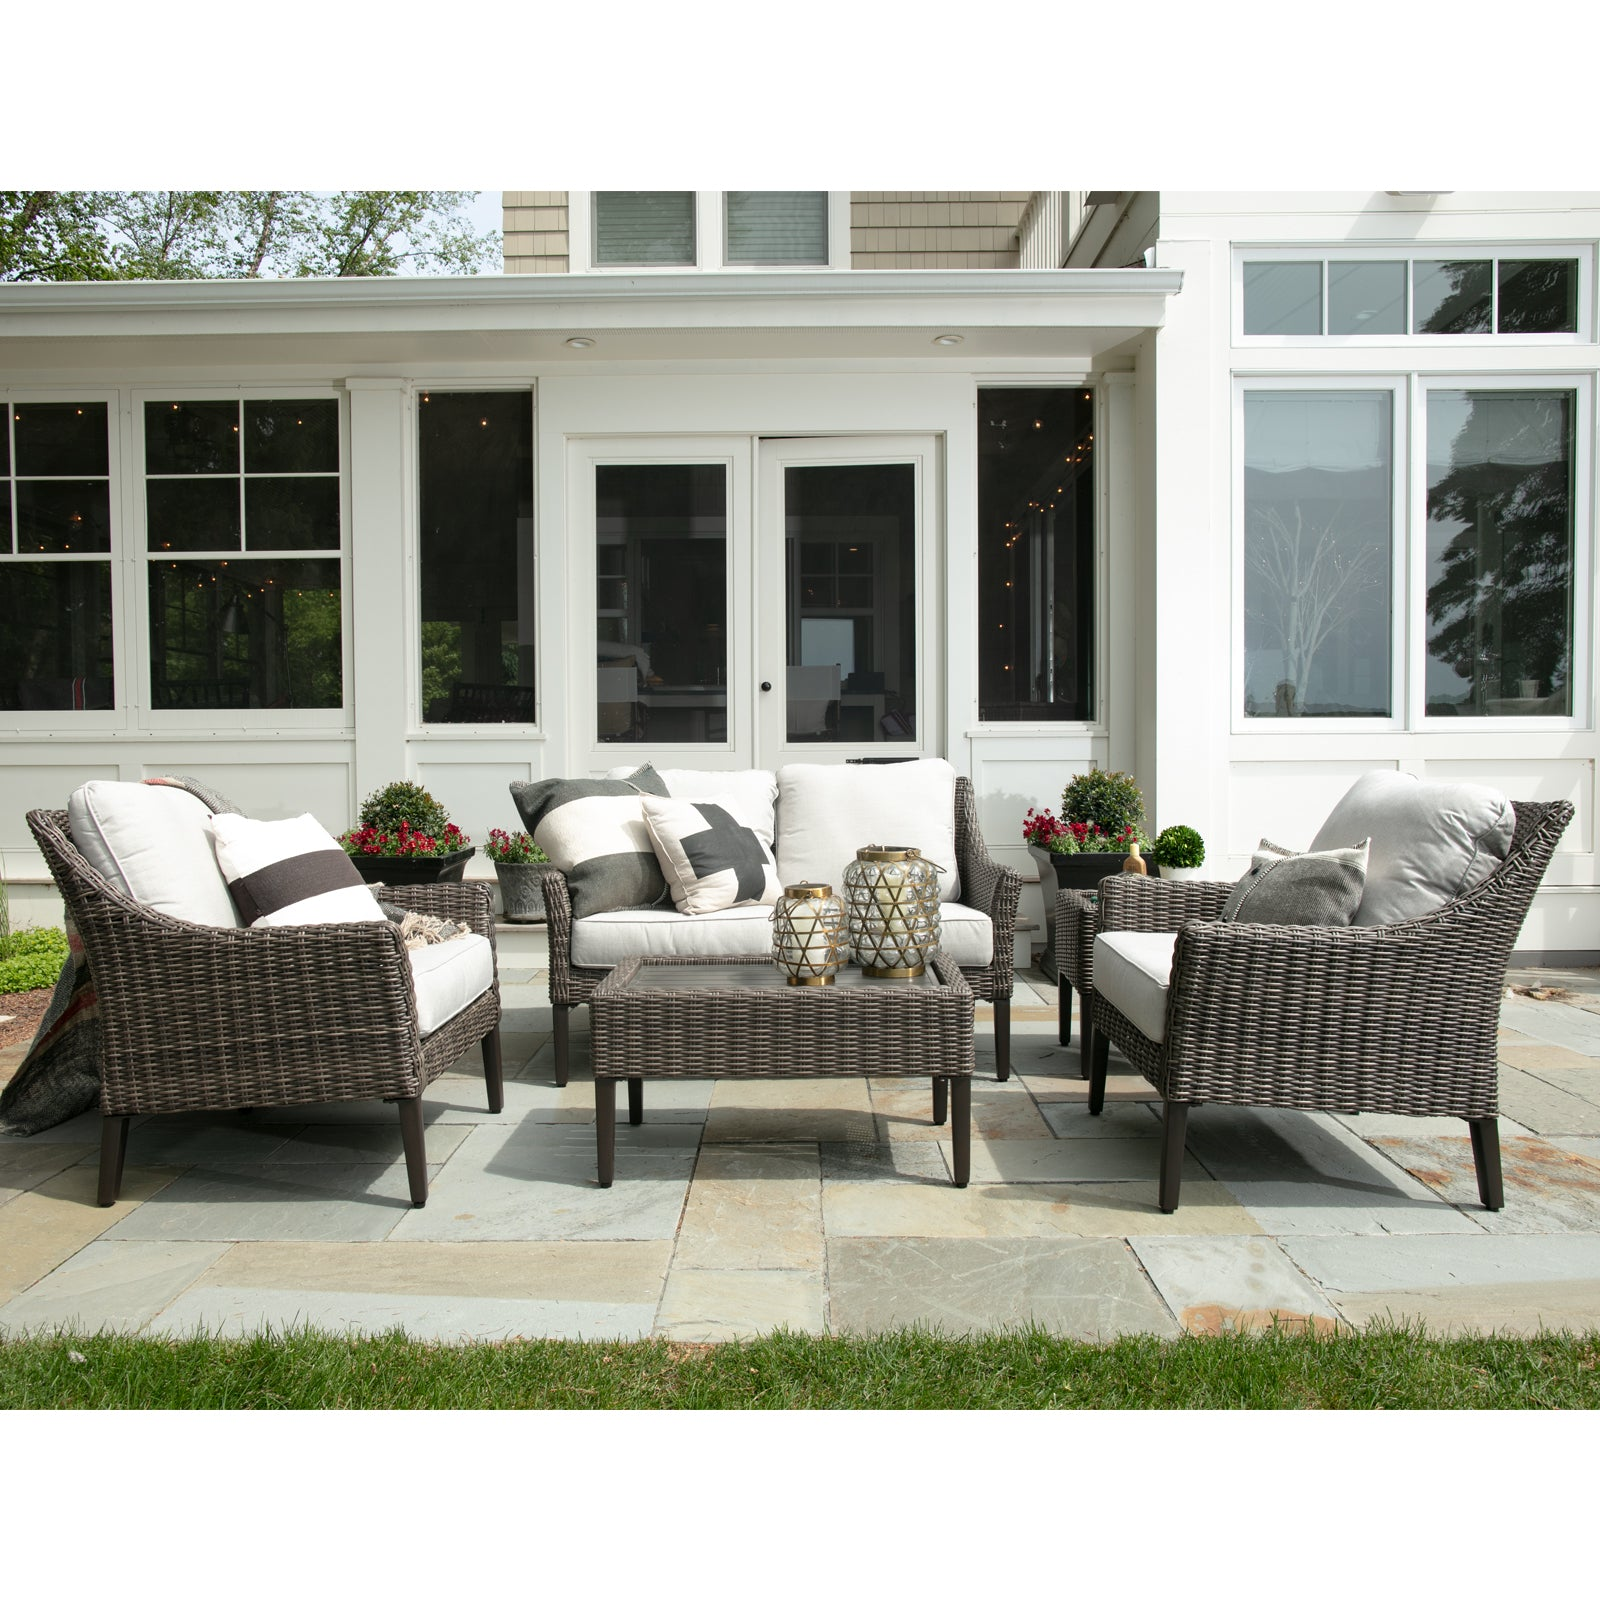 Fantastic Outdoor Harriet Loveseat Set With 2 Chairs Coffee Table Ocoug Best Dining Table And Chair Ideas Images Ocougorg